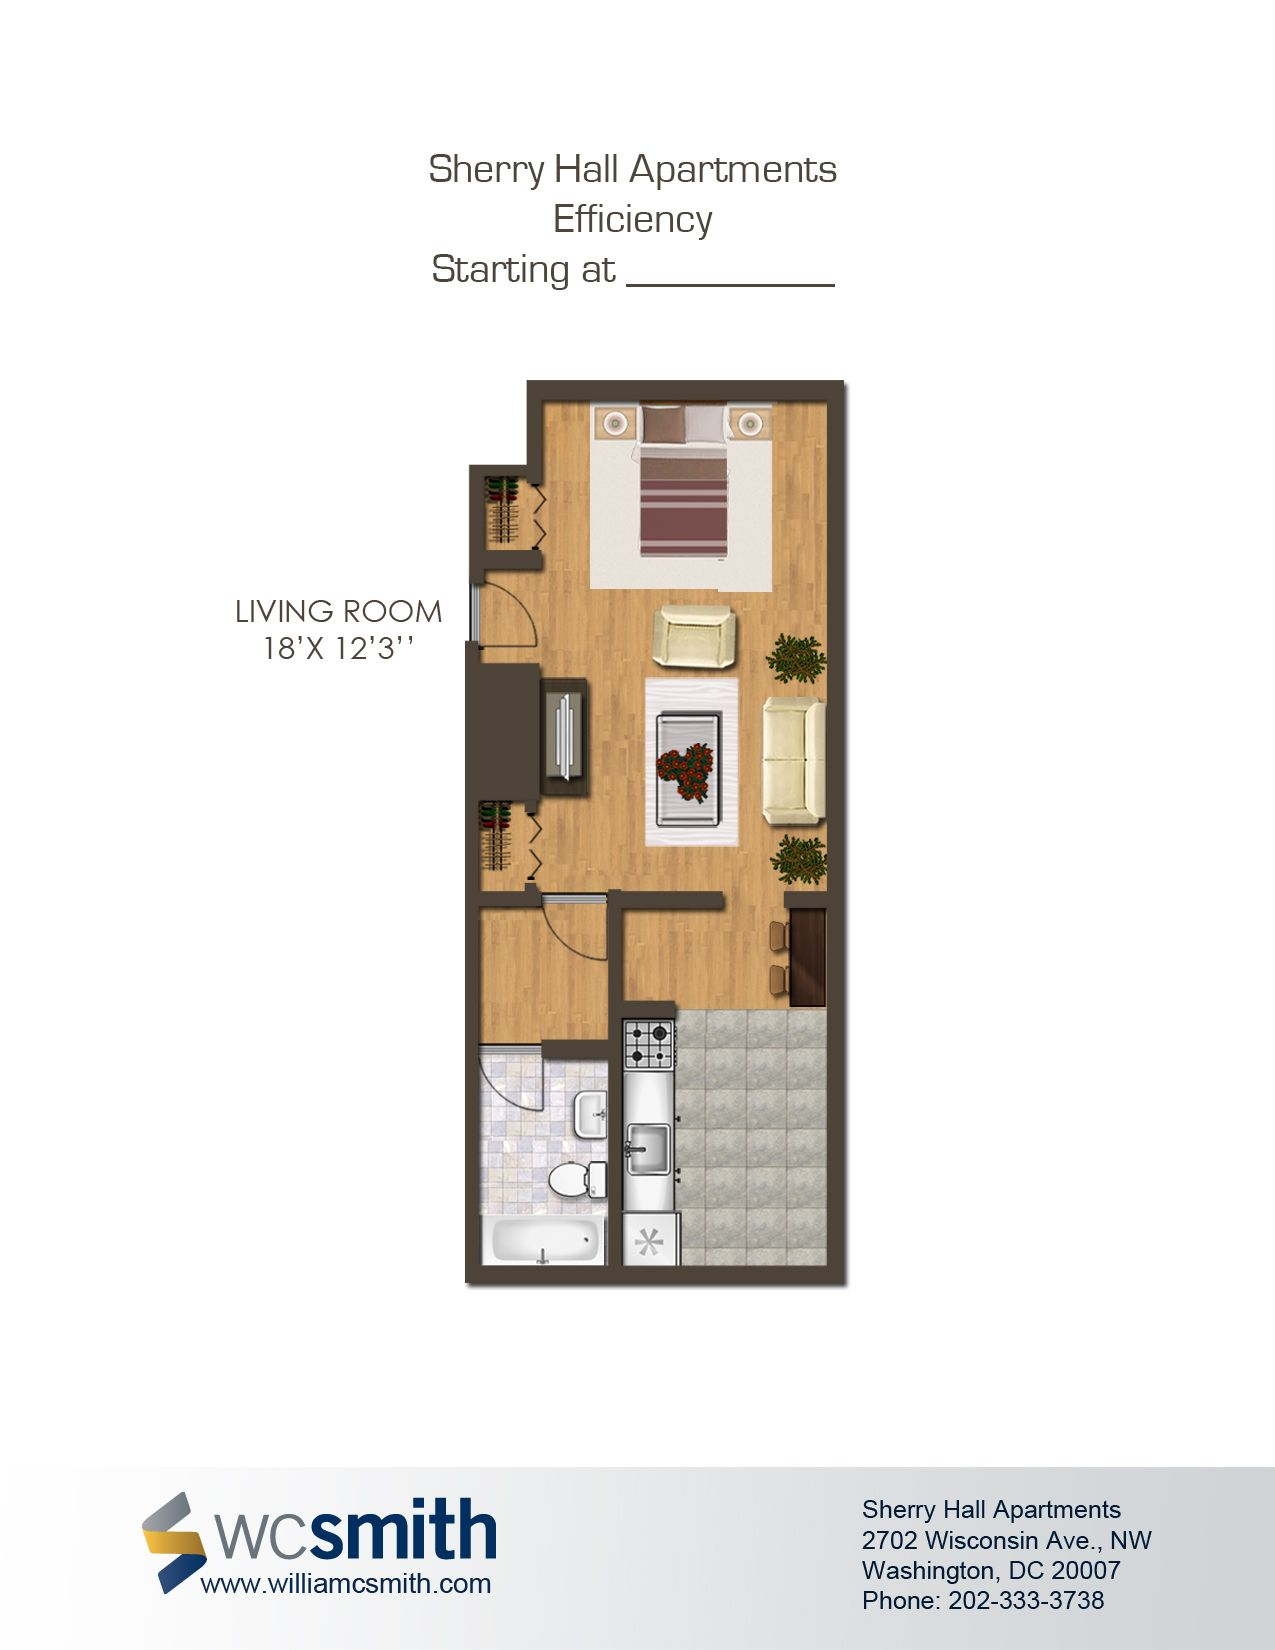 Efficiency Apartment Floor Plans Sherry Hall Home The Basement Apartment Pinterest